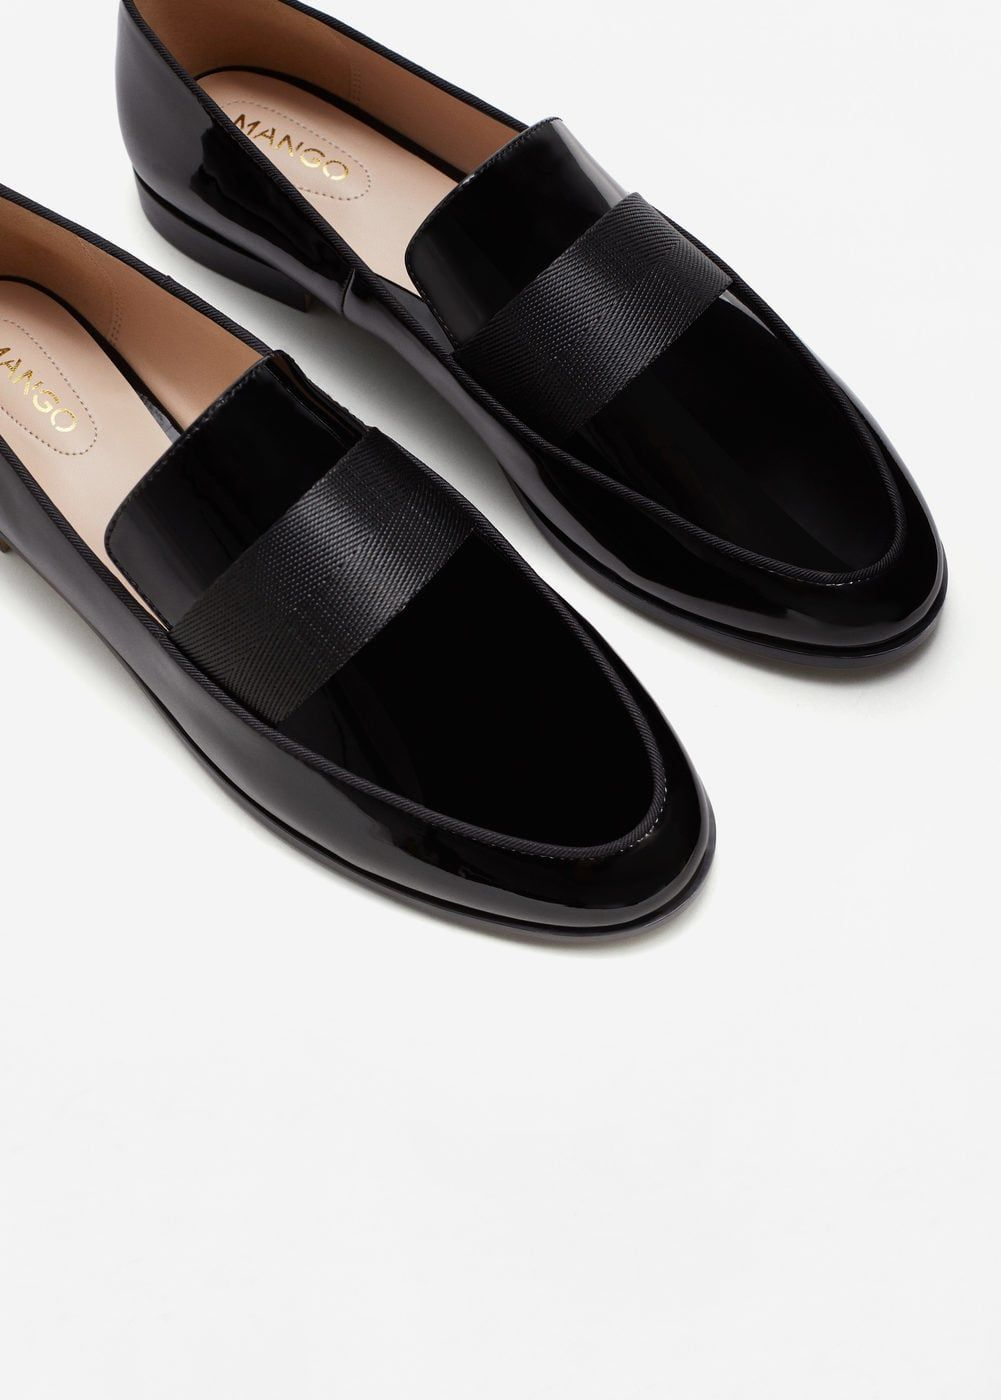 Patent Loafers Mango Patent Loafers Women Dress Shoes Men Loafers For Women [ 1400 x 1001 Pixel ]